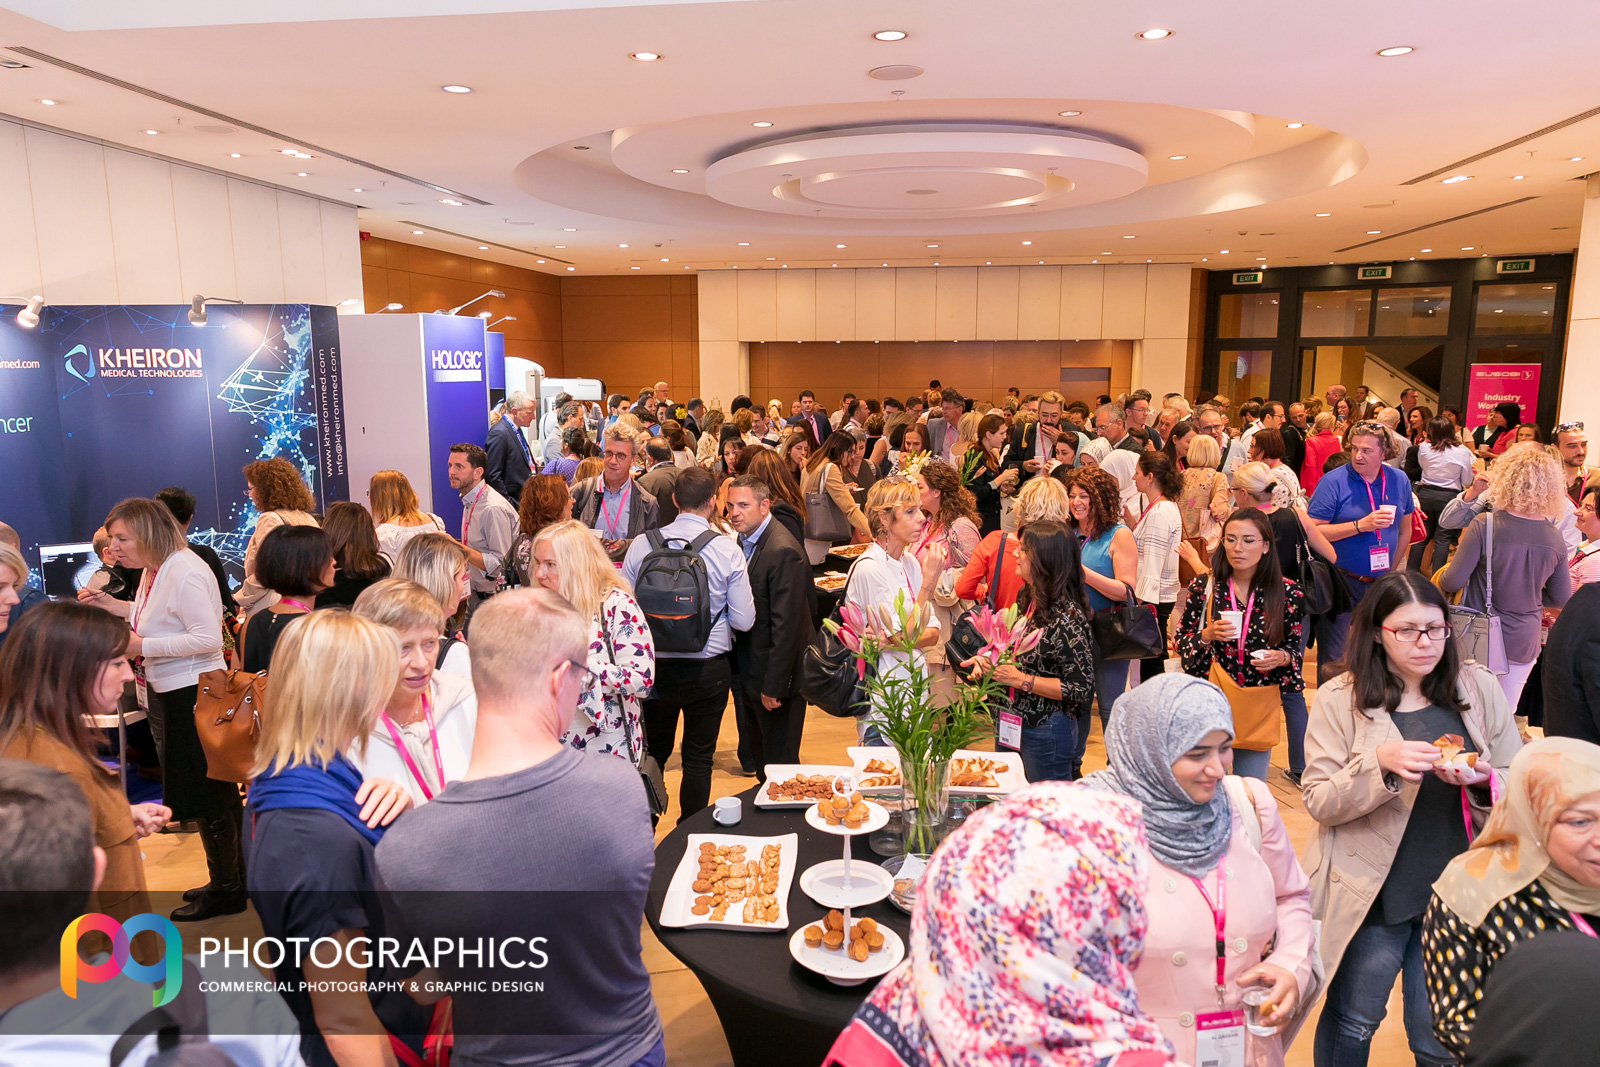 Conference-event-photography-glasgow-edinburgh-athens-7.jpg